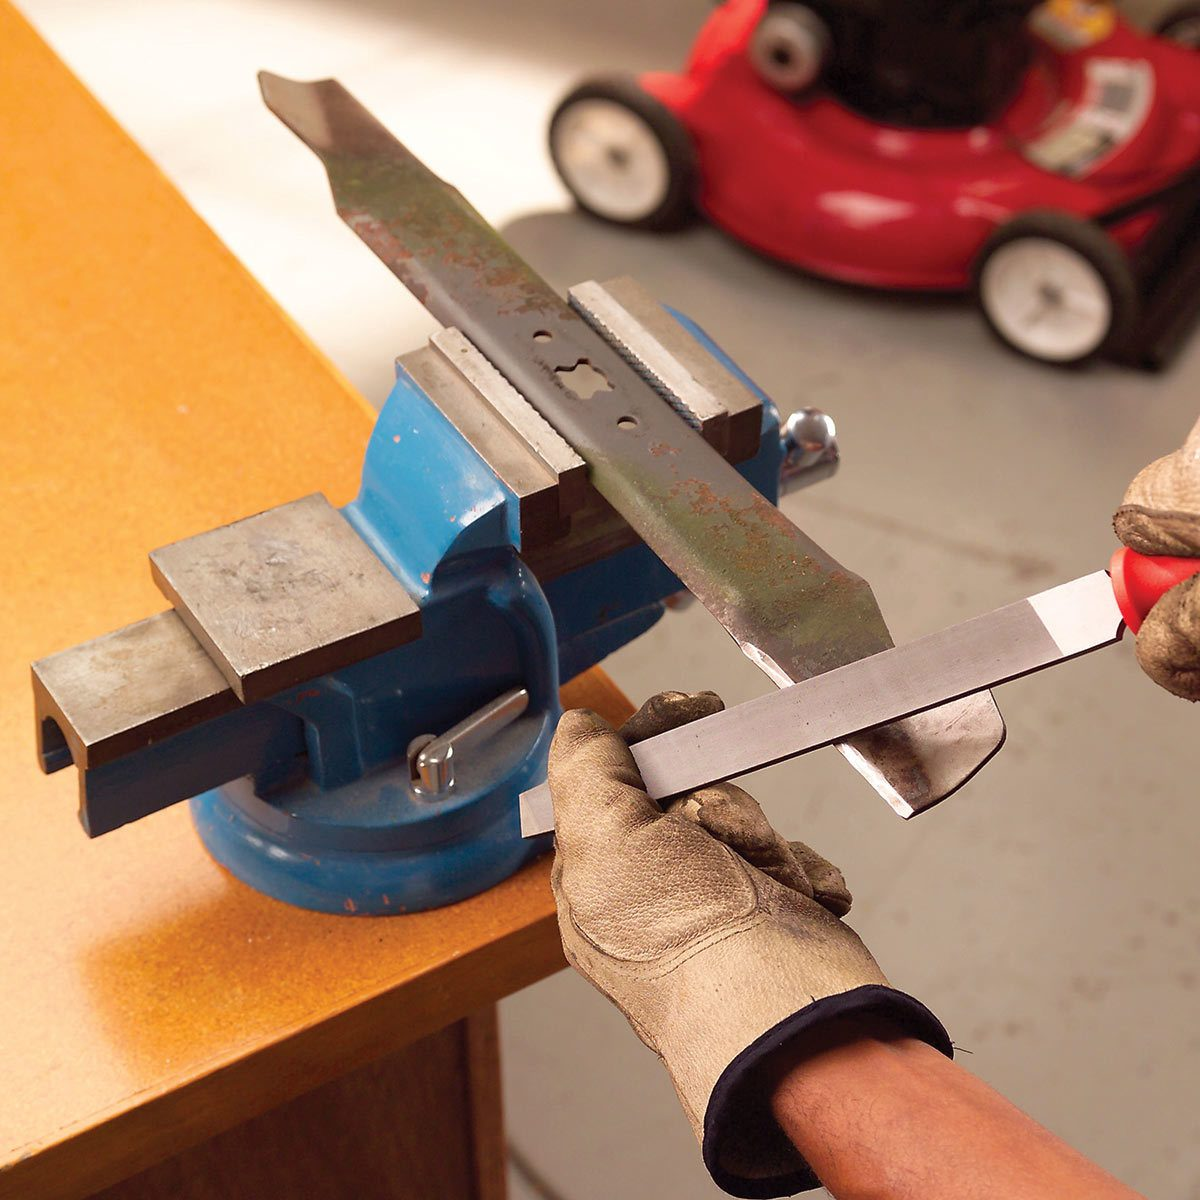 How to Sharpen Lawnmower Blades